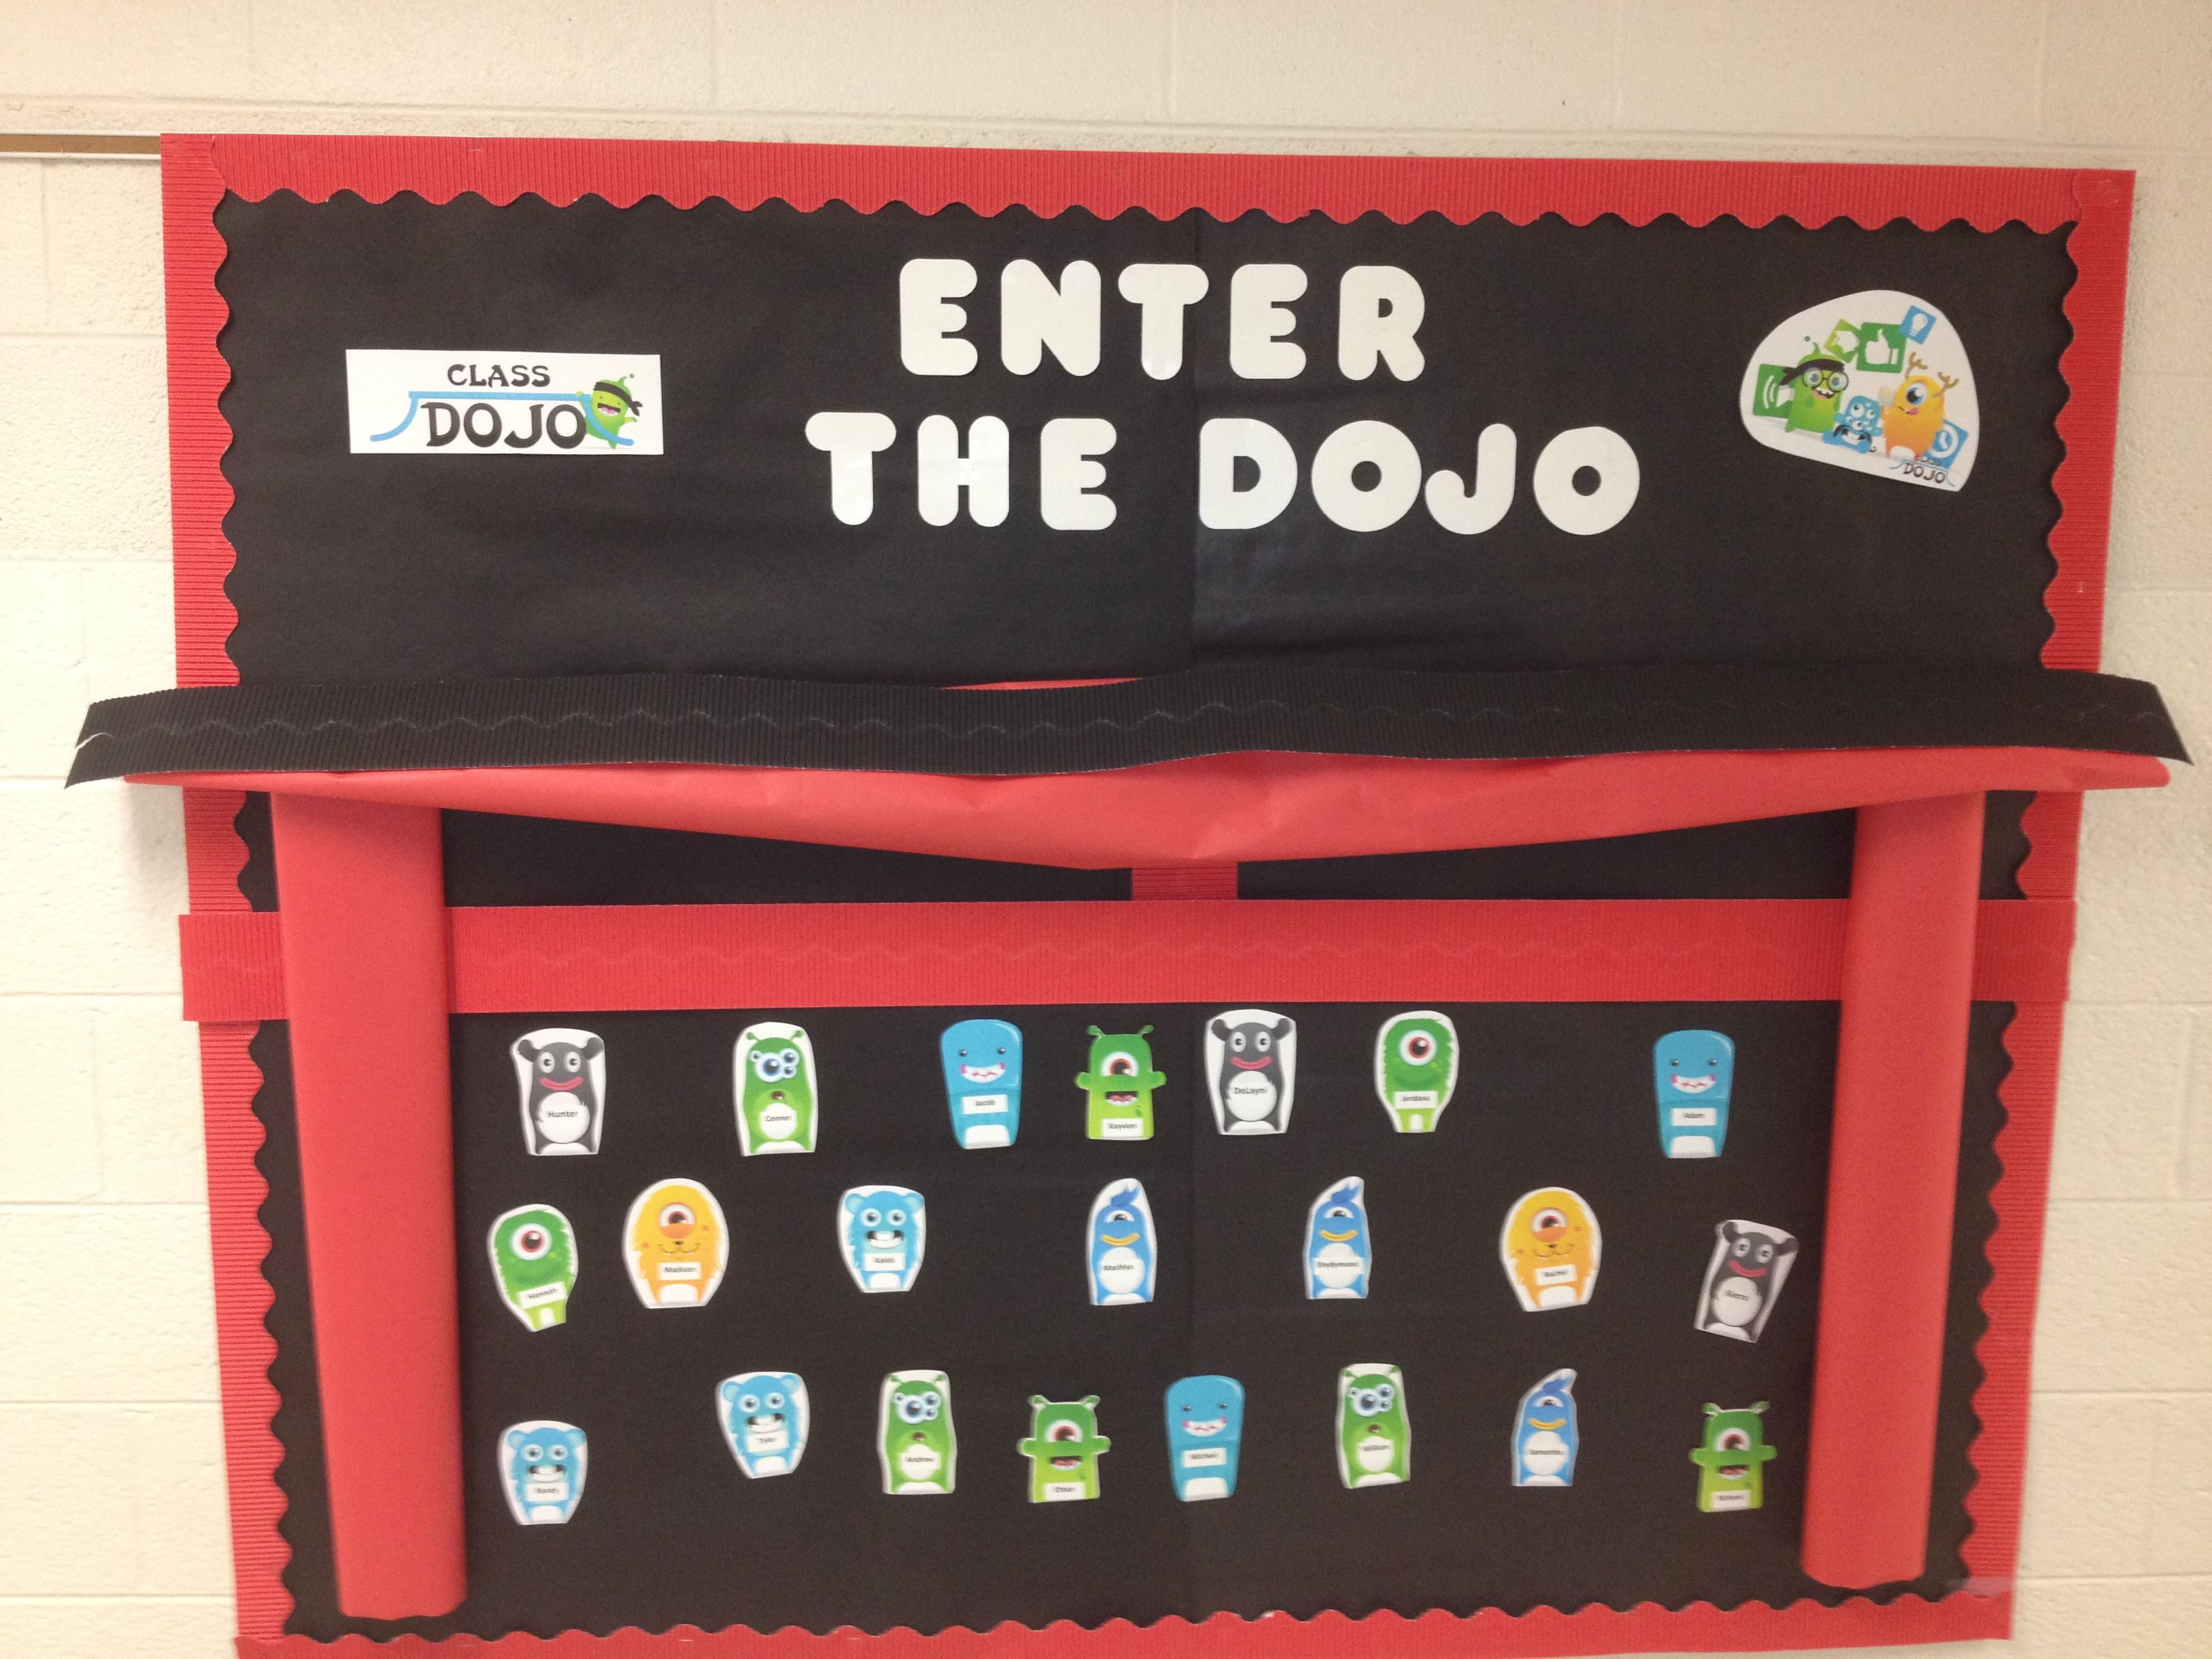 Enter the Dojo! Getting my kids excited about using Class